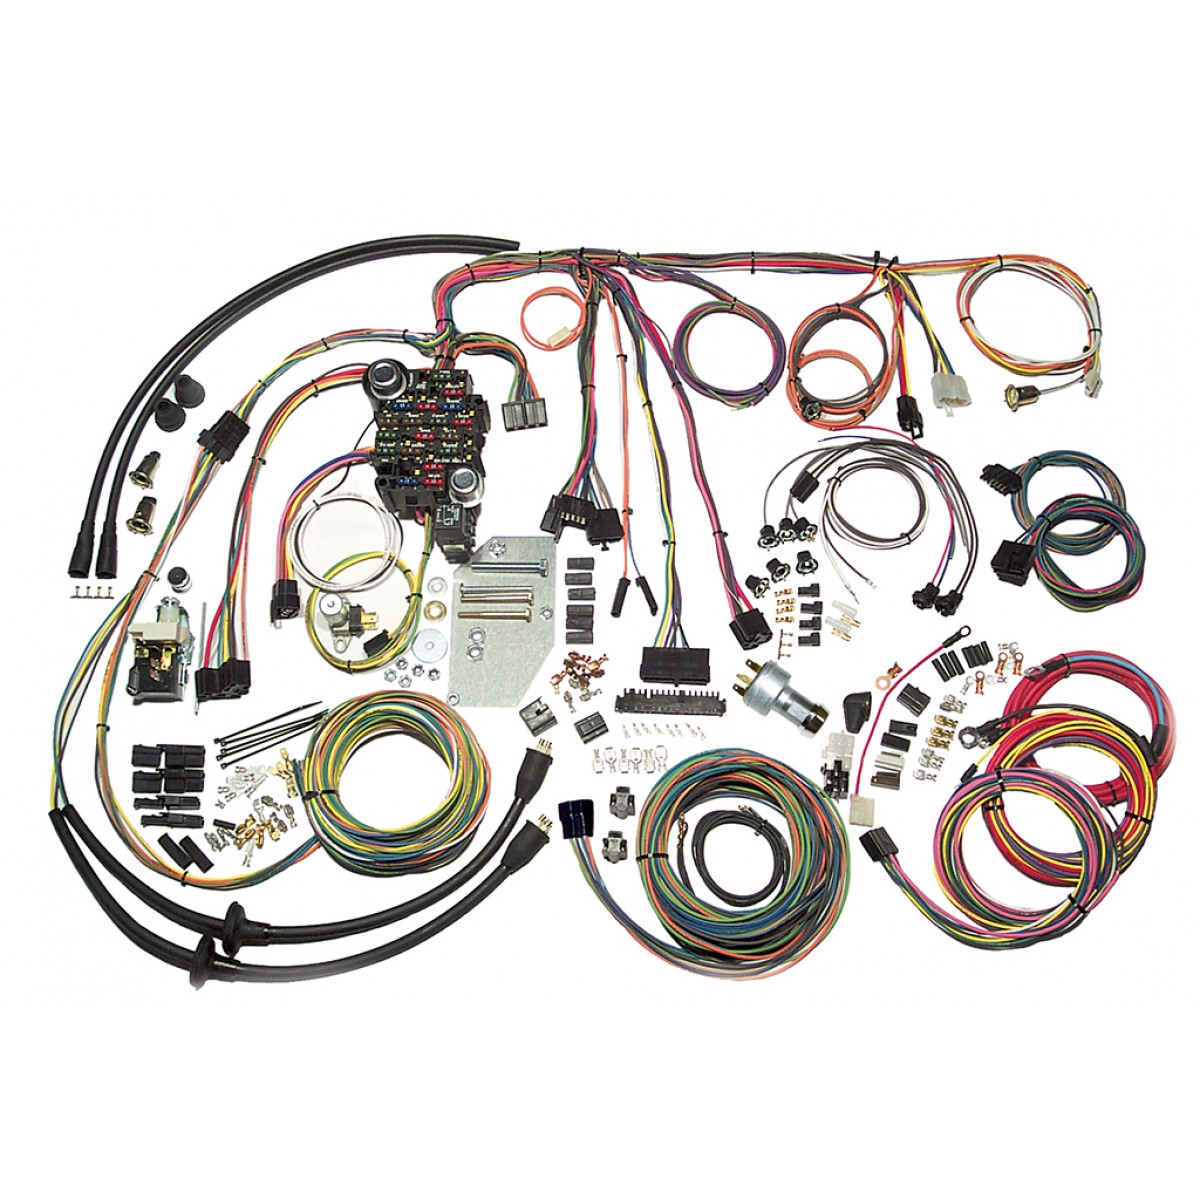 1956 Chevy Wiring Harness Library Complete Kit 1955 Tri Five Belair Part 500423